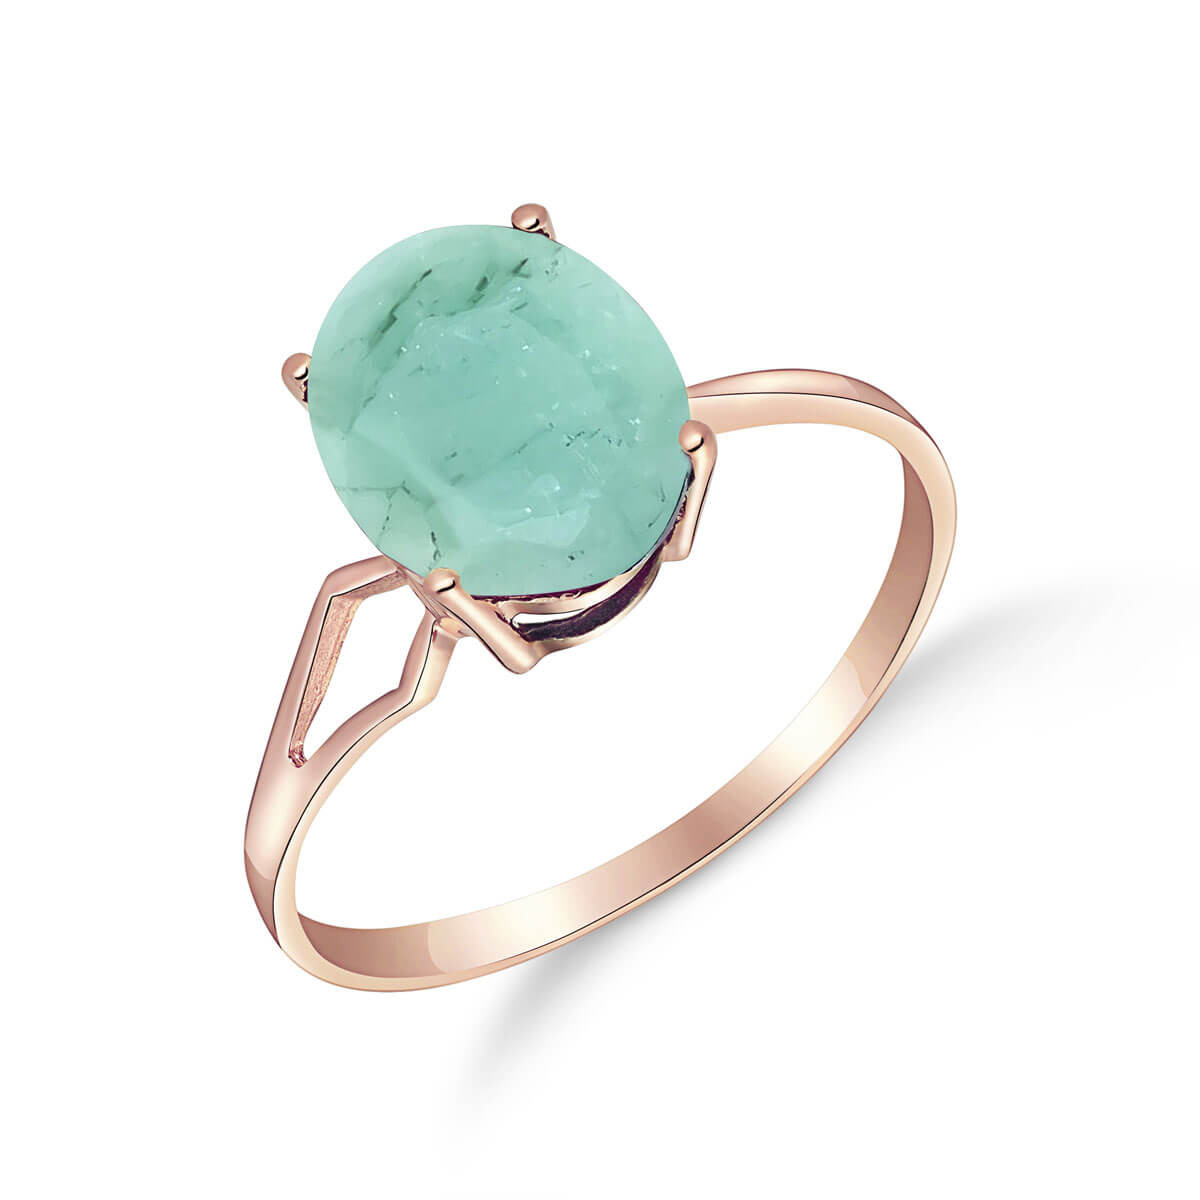 Emerald Claw Set Ring 2.9 ct in 9ct Rose Gold